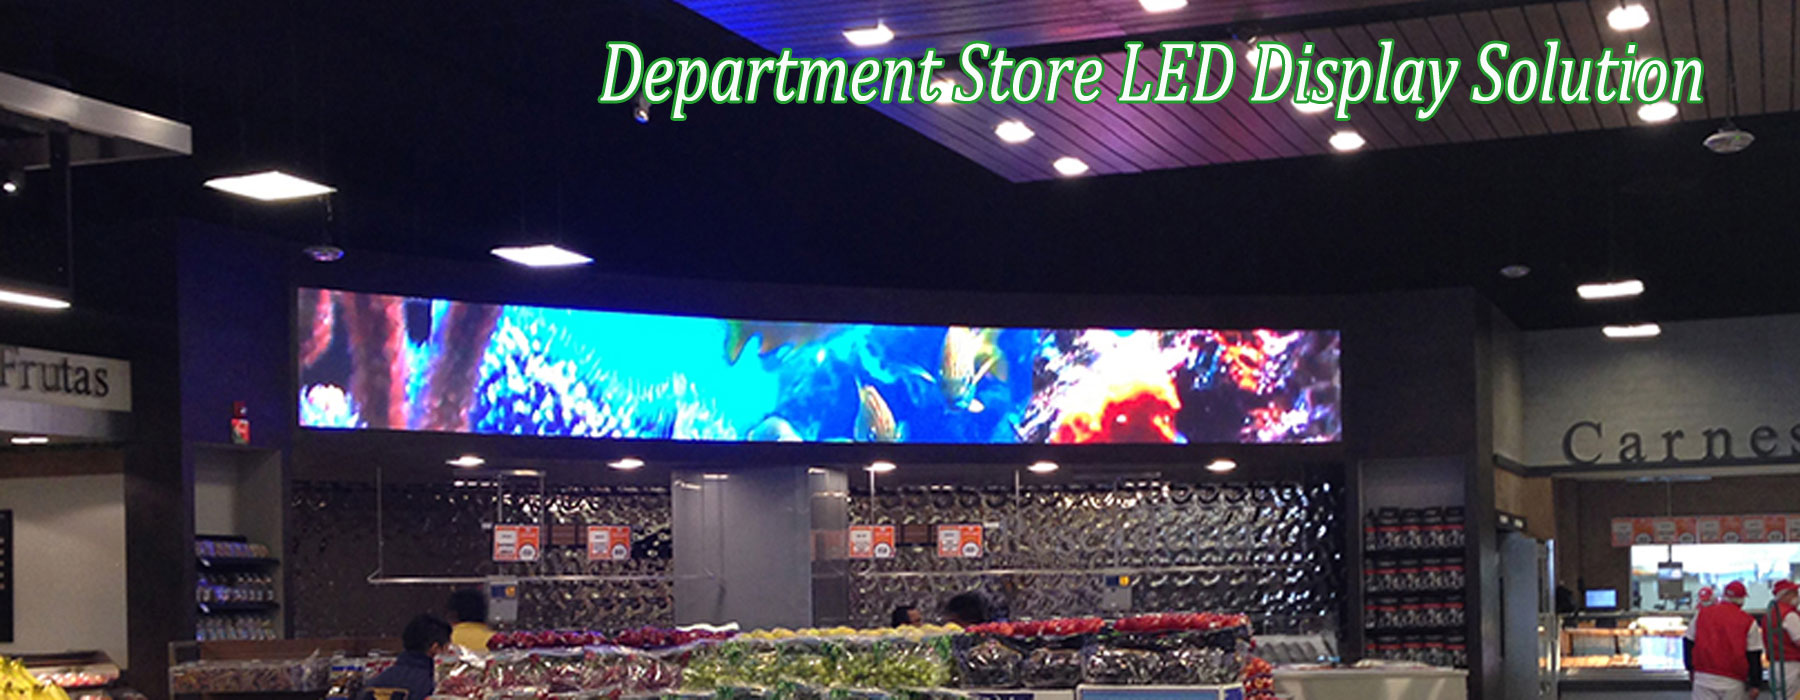 Department-Store-LED-Display-Solution